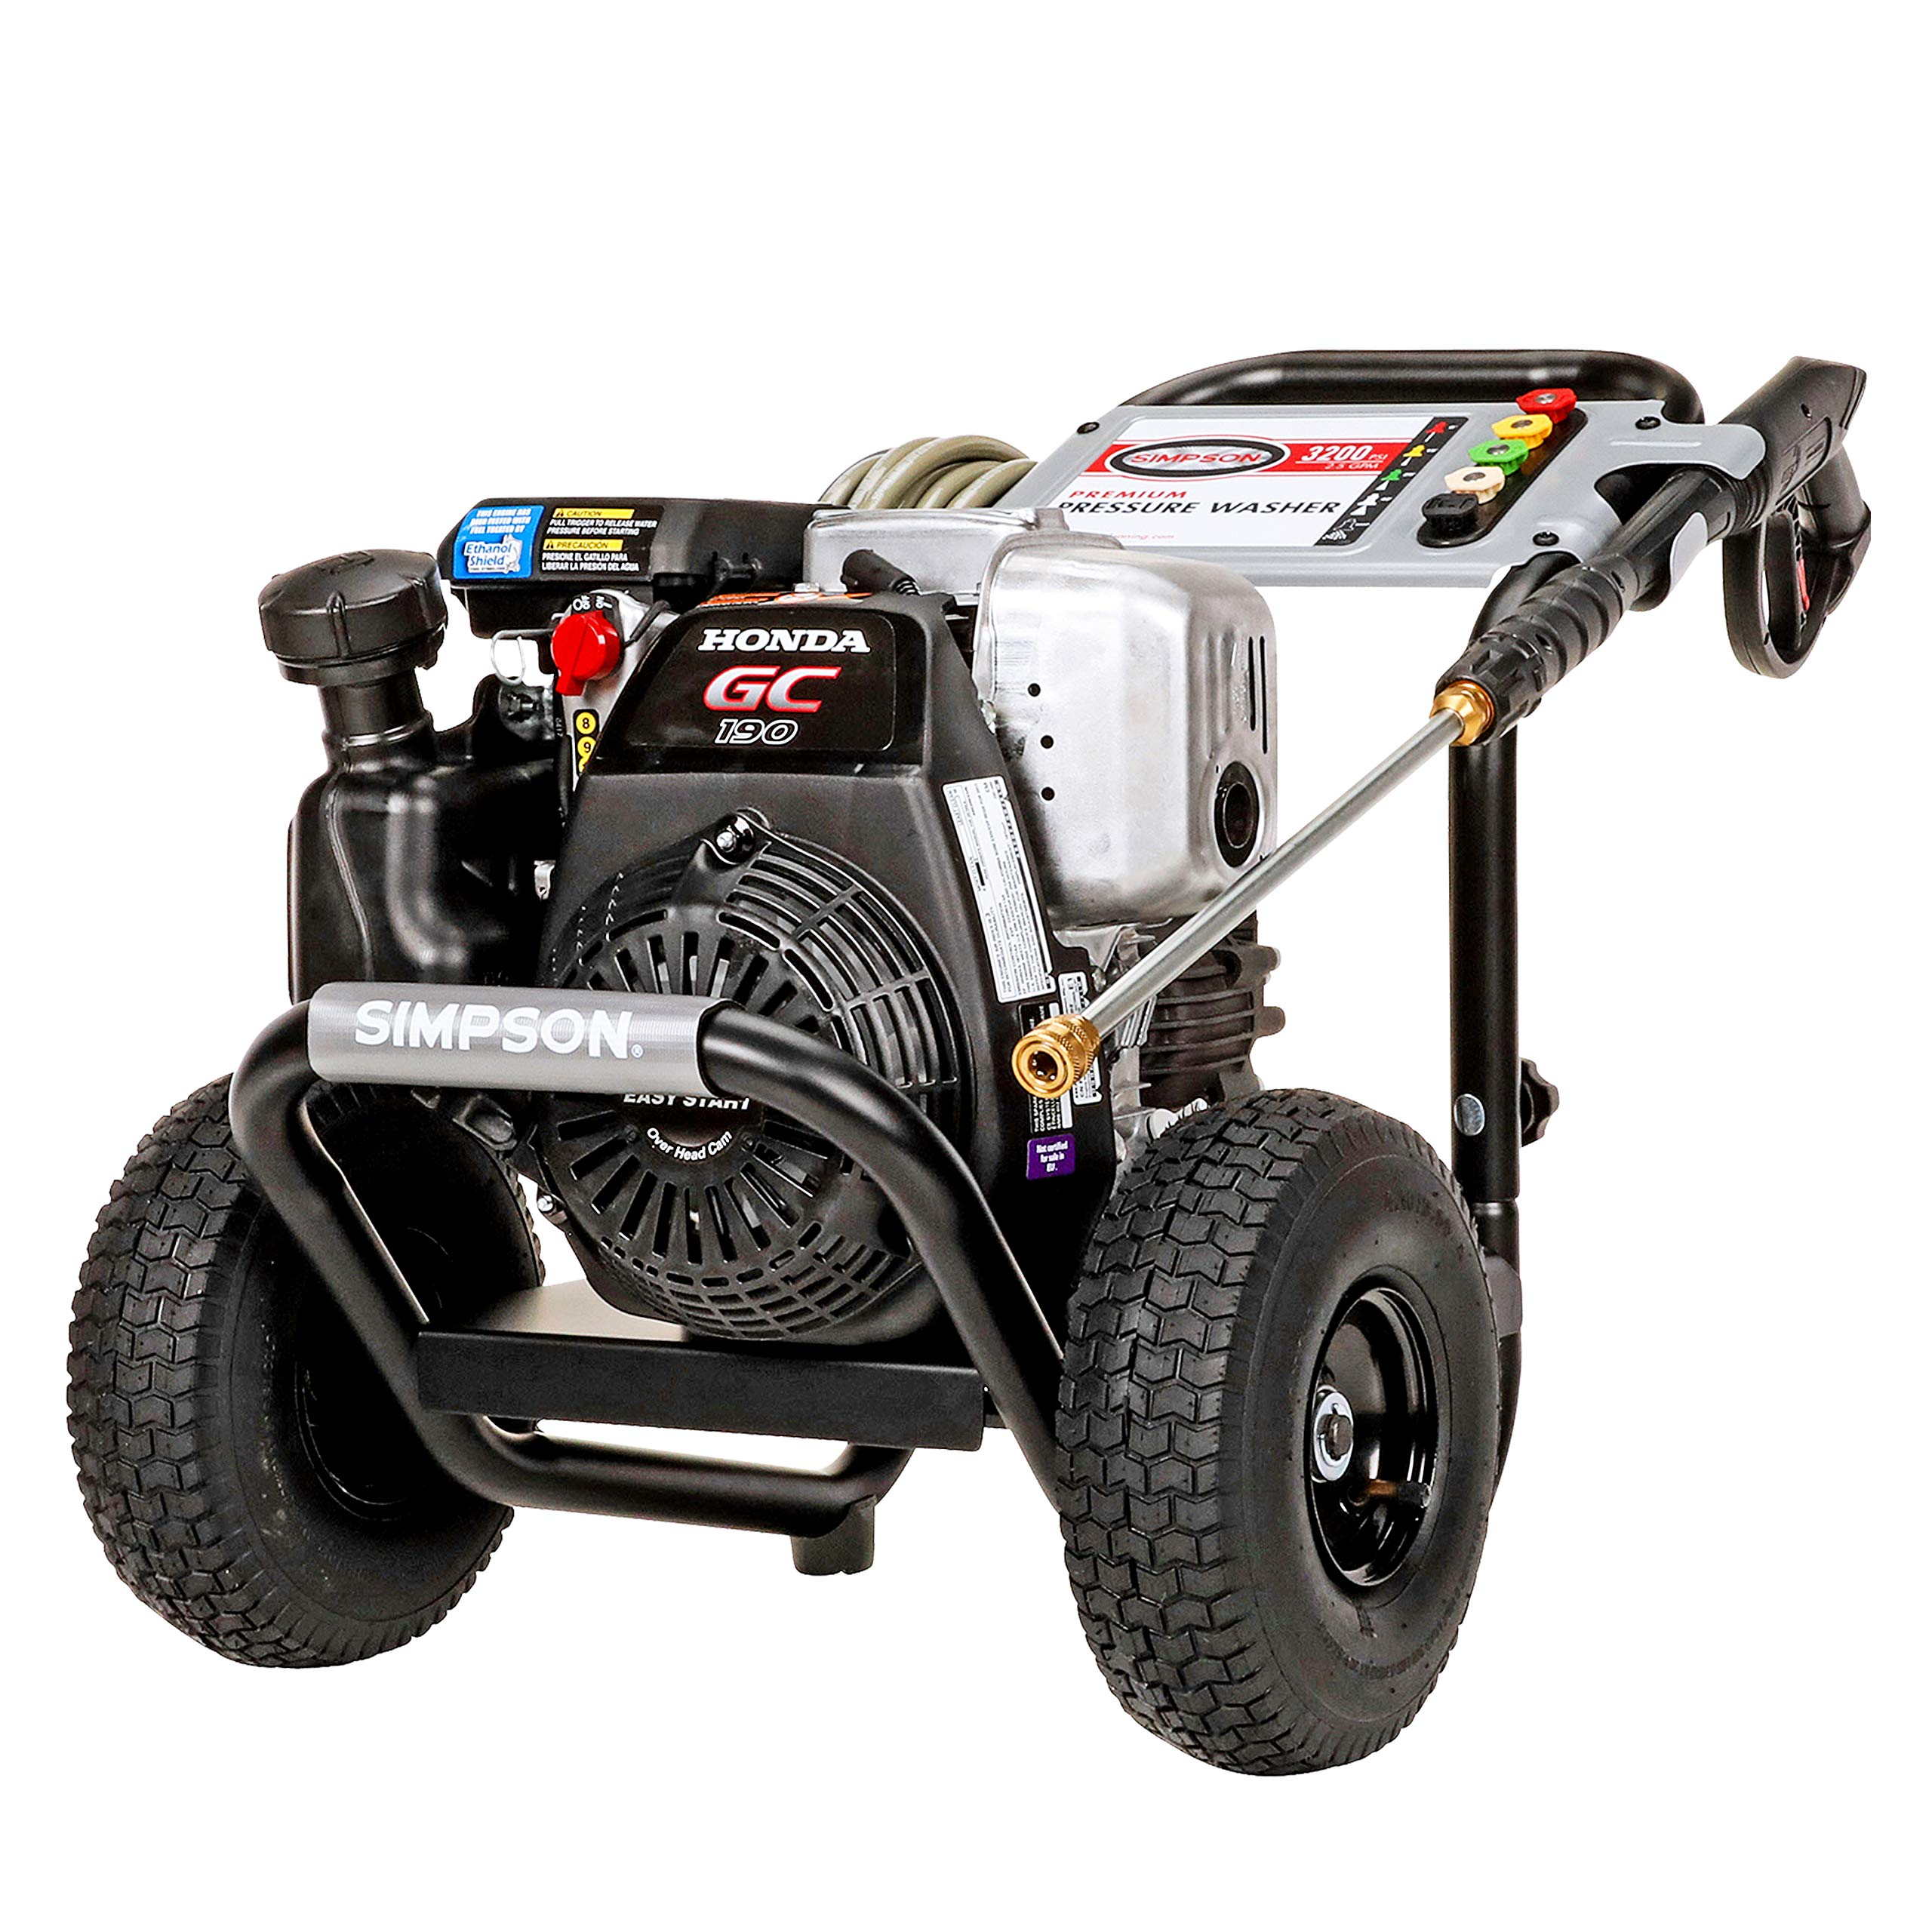 Simpson MSH3125 MegaShot Gas Pressure Washer Powered by Honda GC190, 3200 PSI at 2.5 GPM by SIMPSON